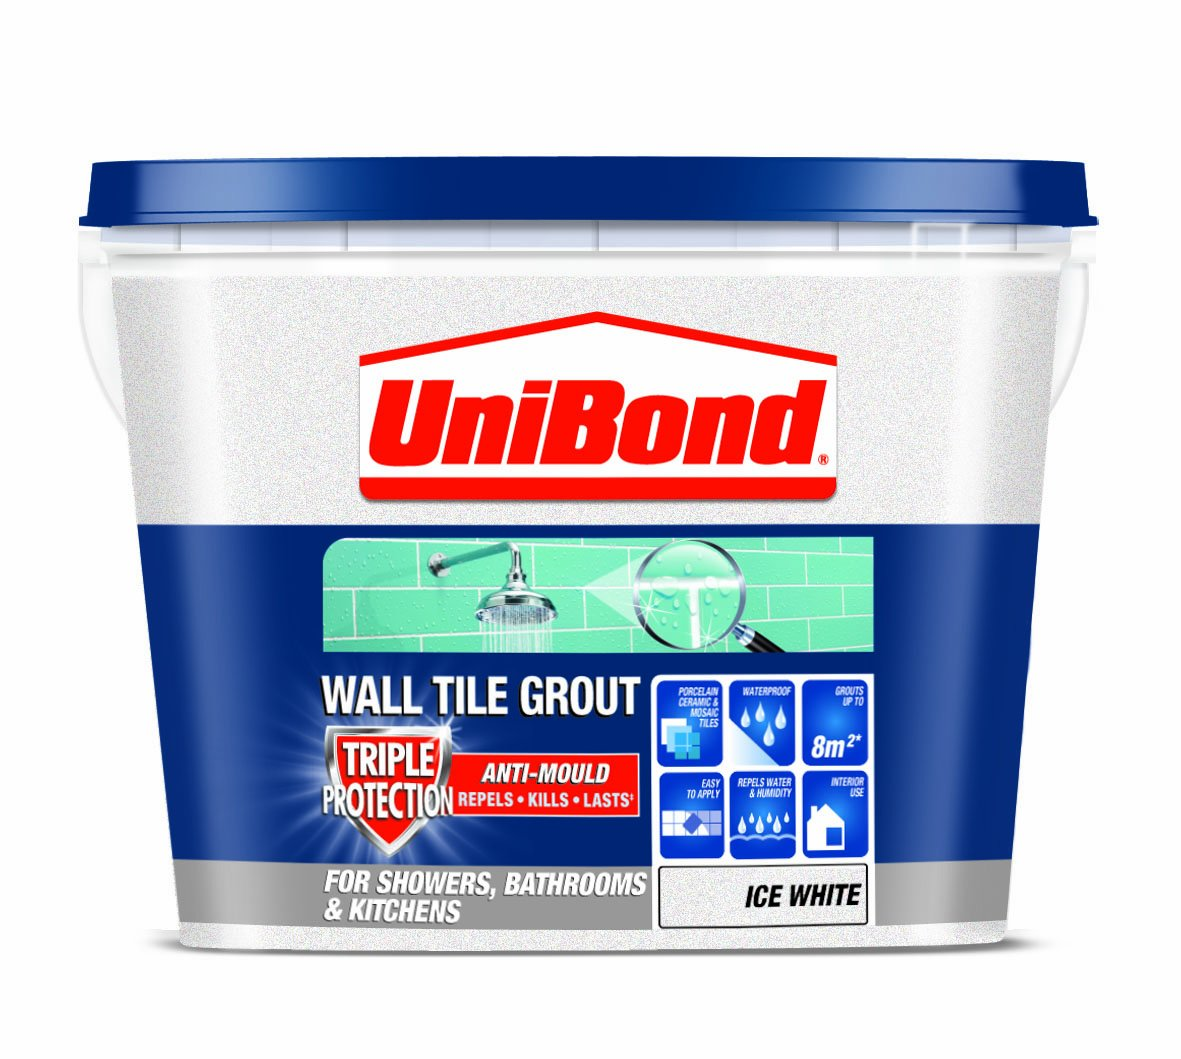 Unibond triple protect anti mould wall tile grout 1 l white unibond triple protect anti mould wall tile grout 1 l white amazon diy tools dailygadgetfo Gallery